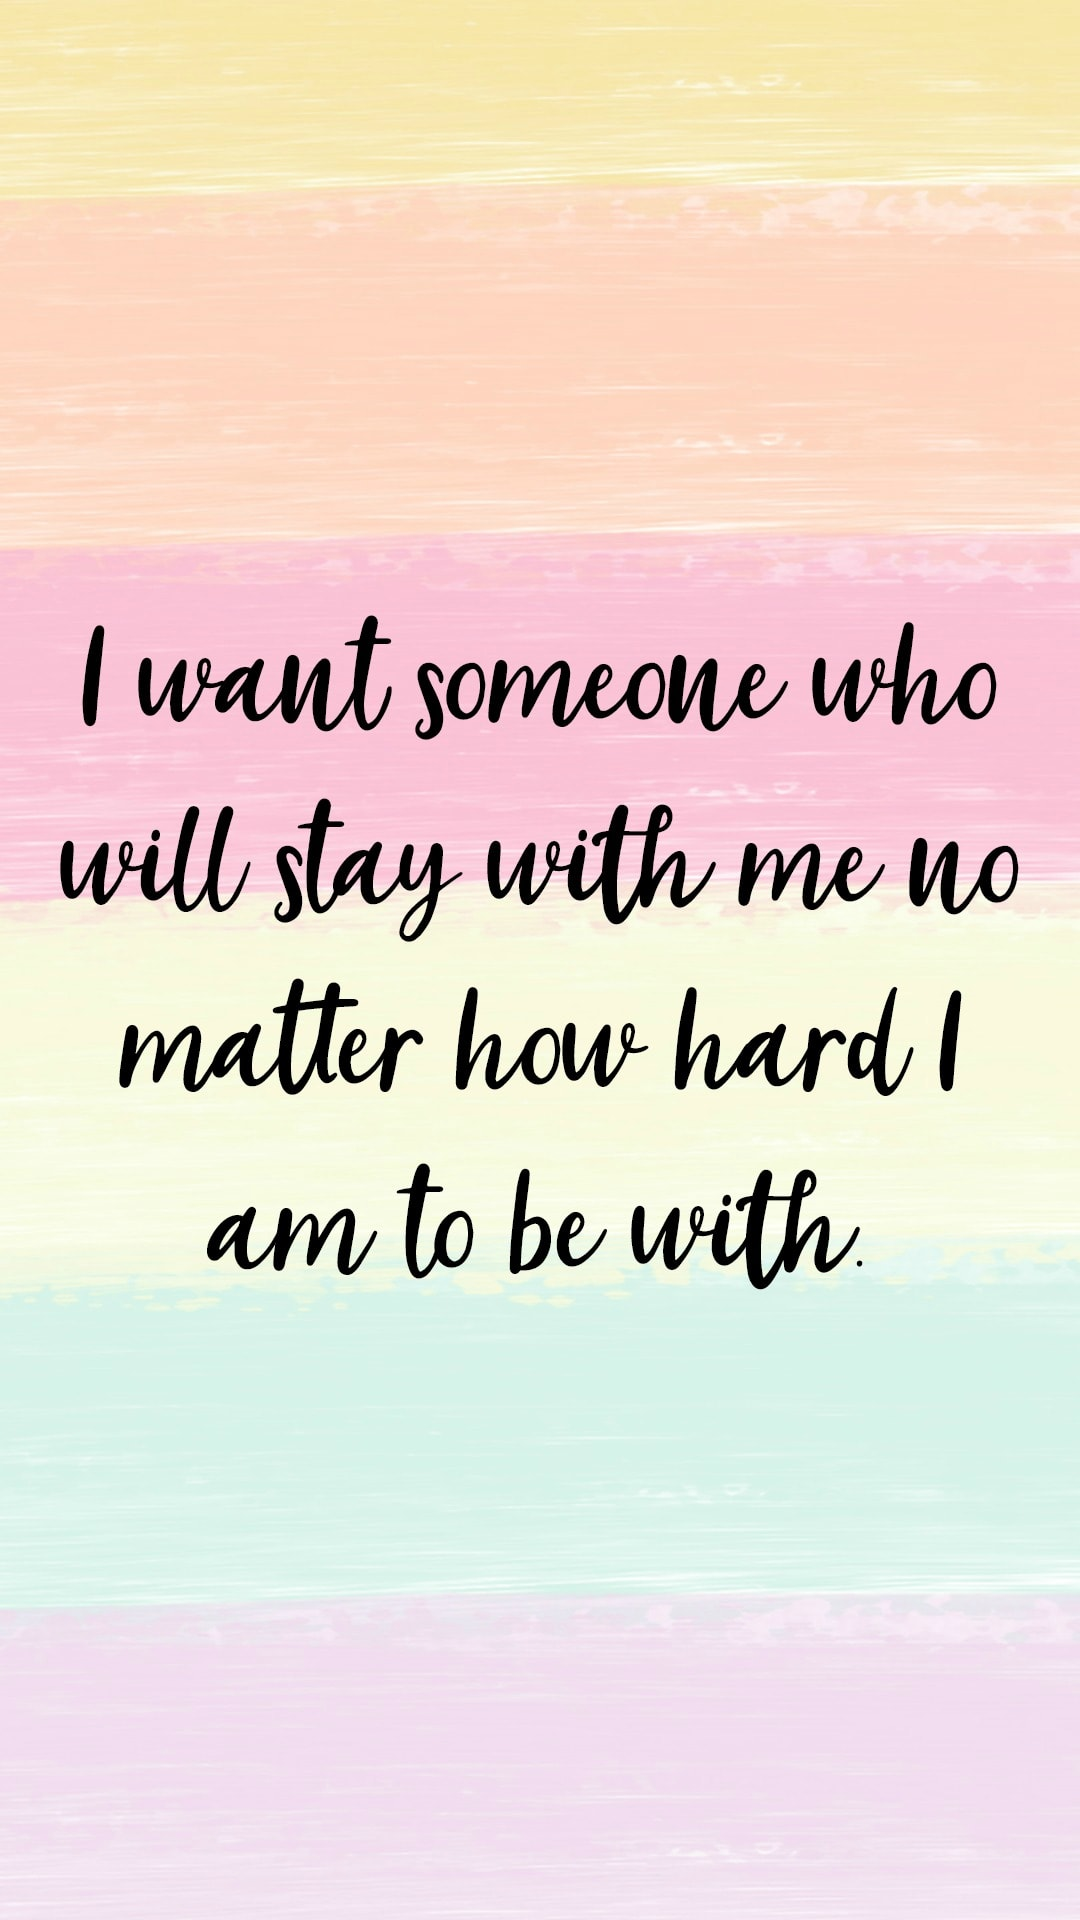 I want someone who will stay with me, no matter how hard I am to be with.